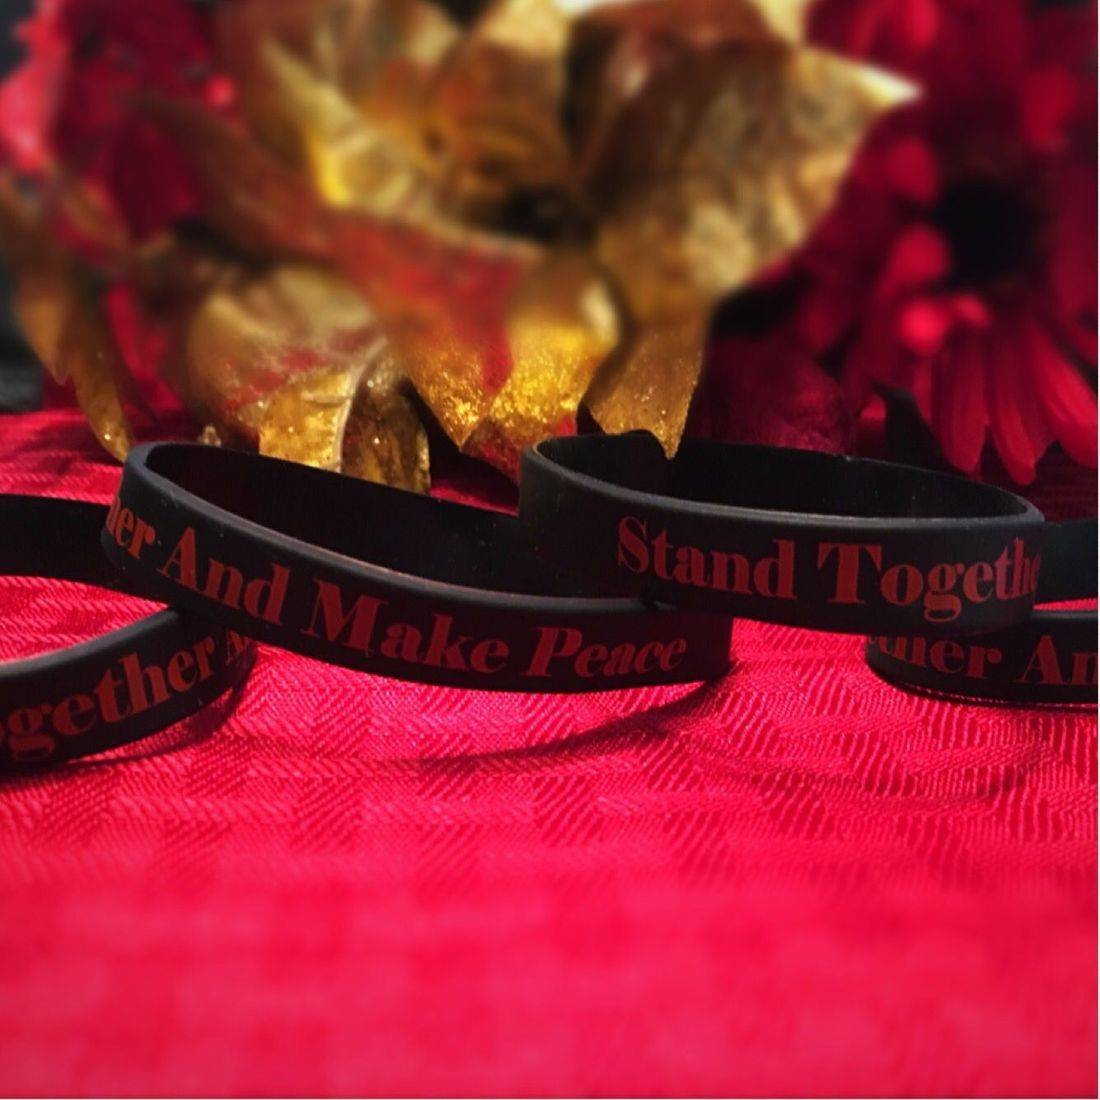 STAMP Wristbands, STAMP, #STAMPNationChat, Derrick Hazelwood